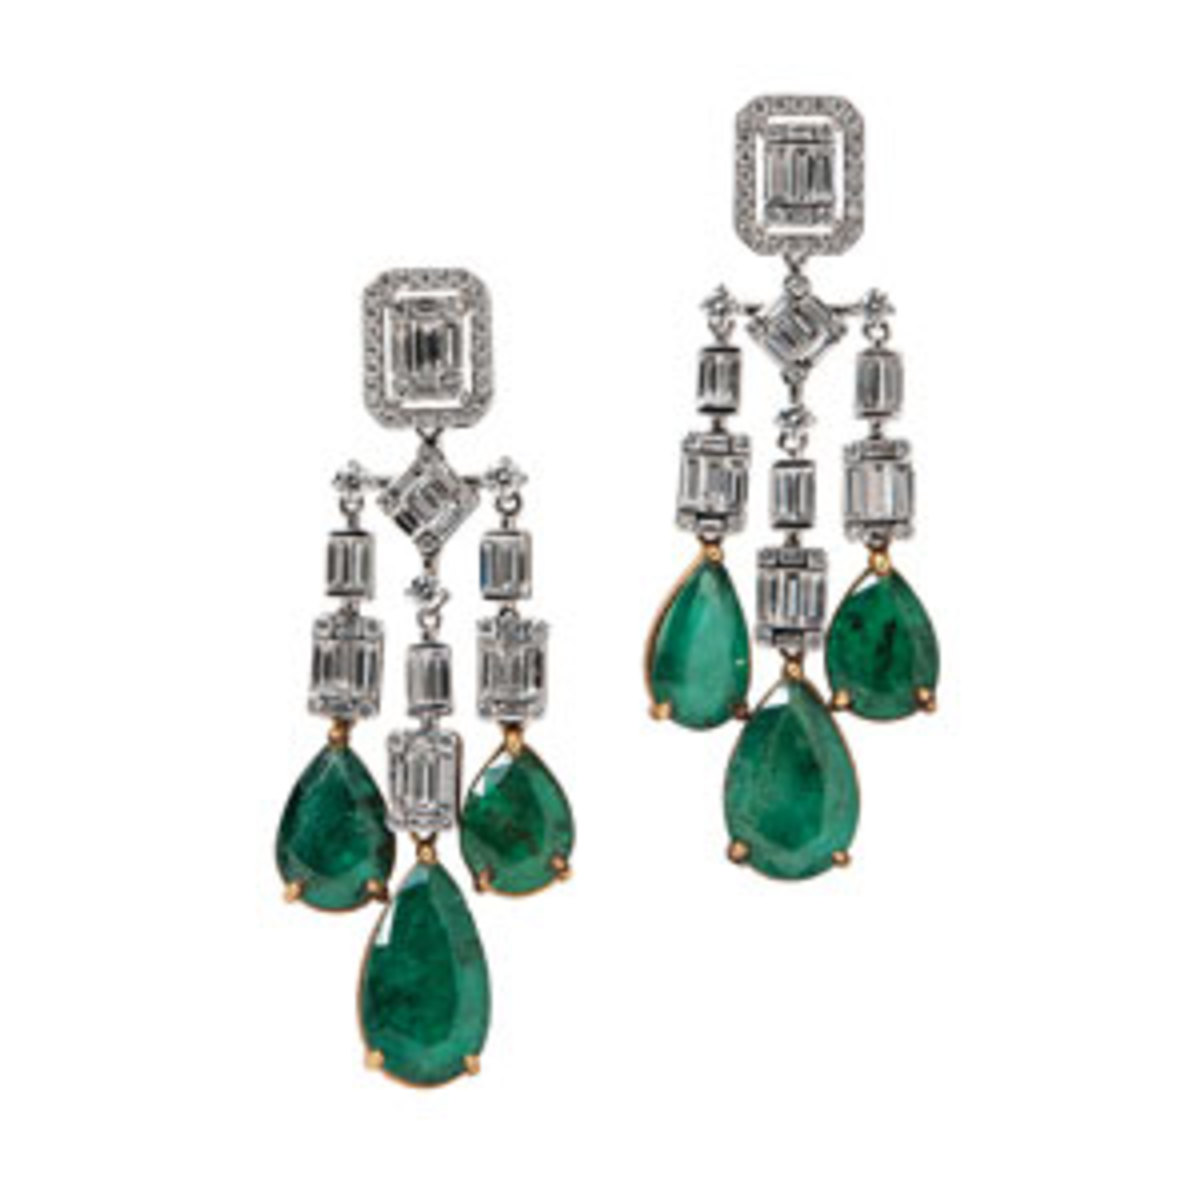 "18kt gold, emerald, and diamond earrings, Umrao, the full- and baguette-cut diamonds suspending emerald drops, total diamond wt. 2.45, total emerald wt. 12.15 cts., 1-7/8"" l. Estimate: $4,000-$6,000."